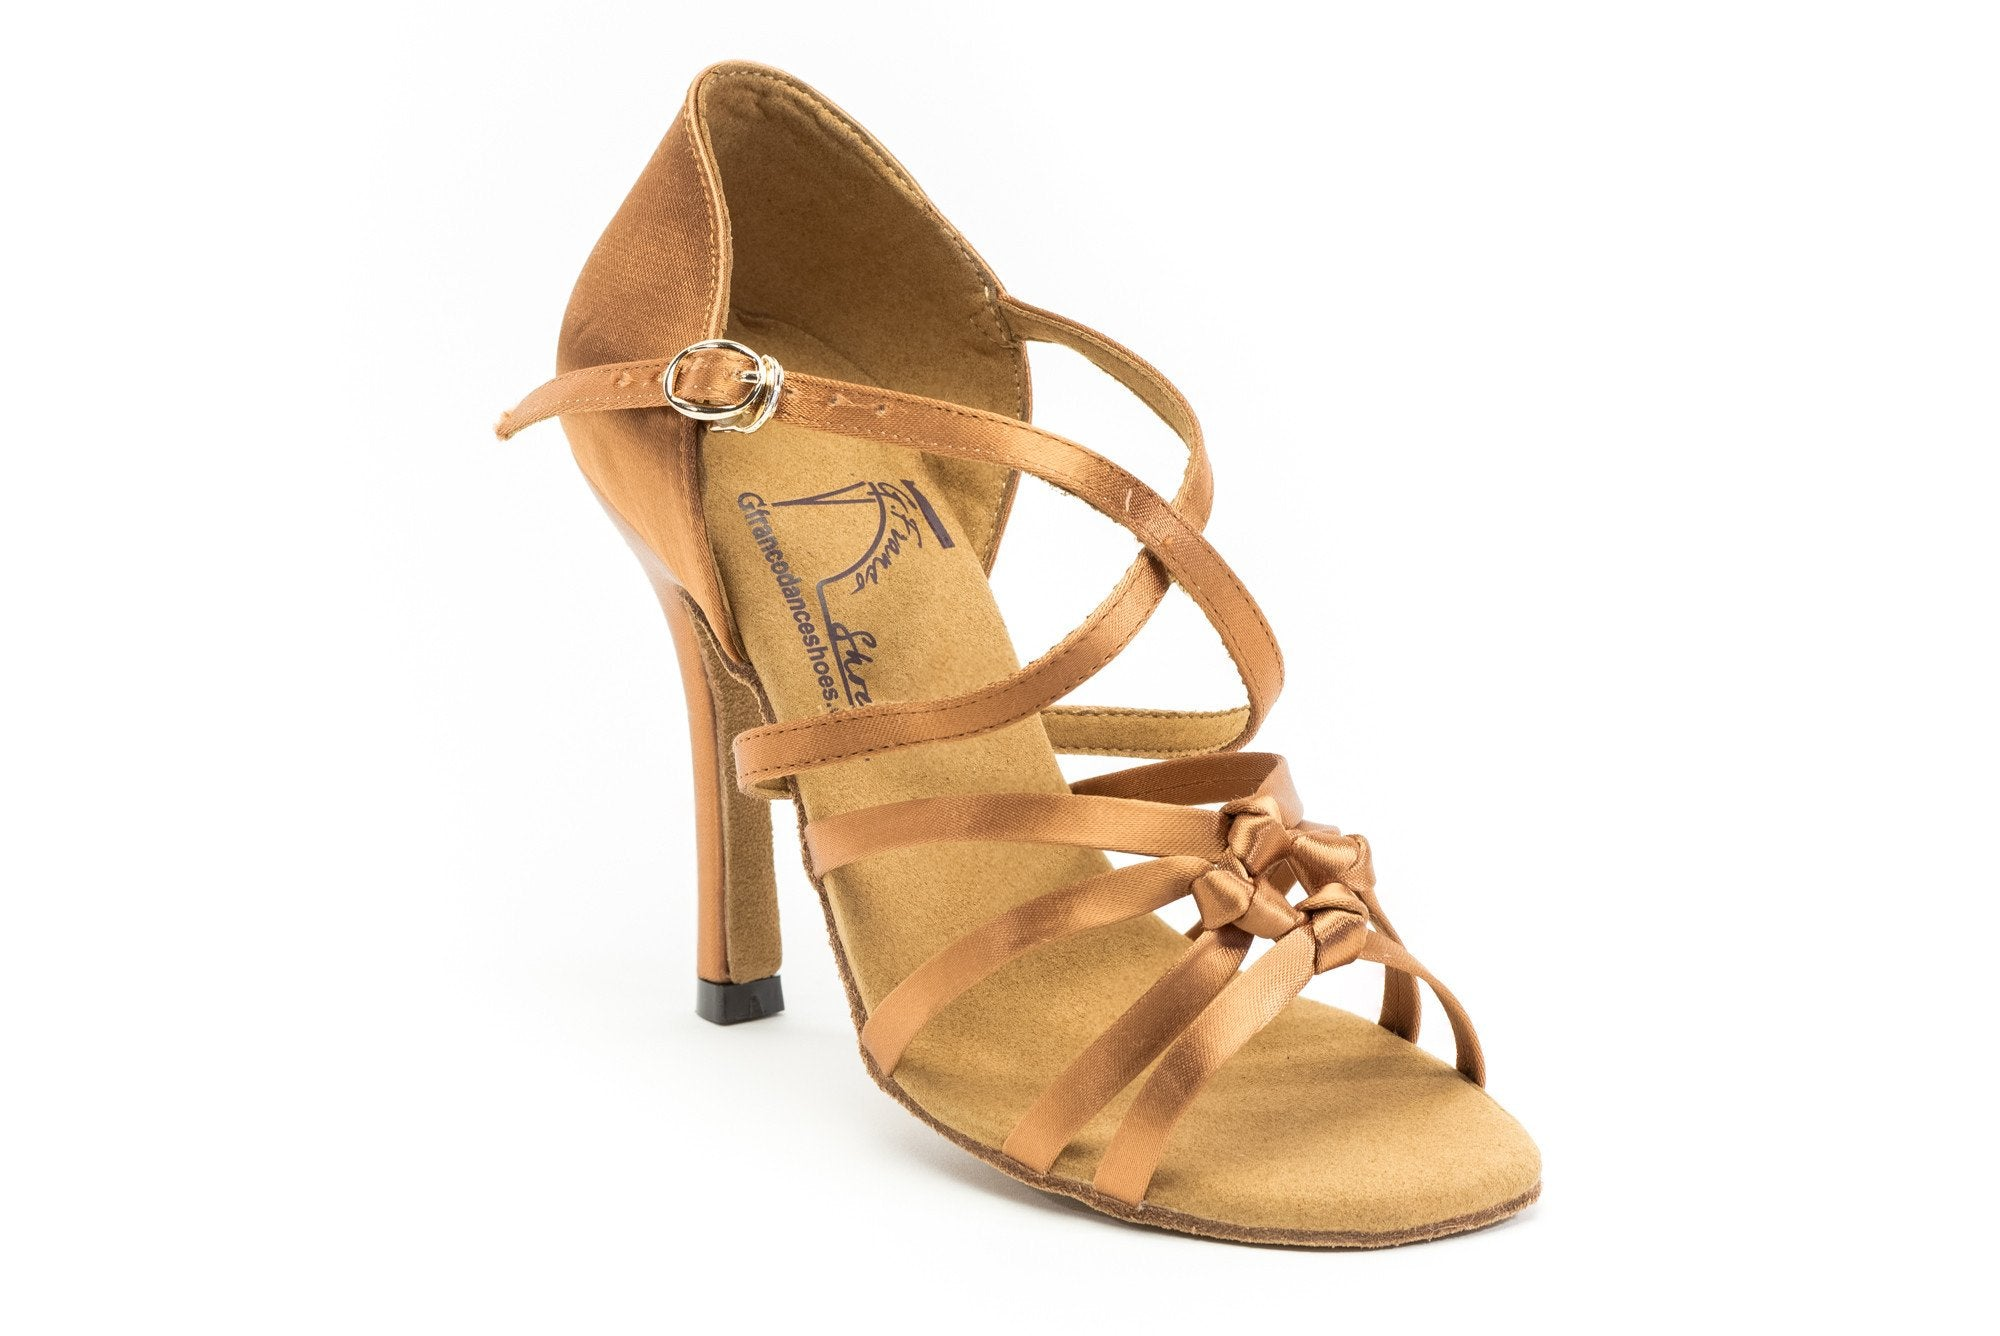 GFranco tan dance shoe - the Destiny